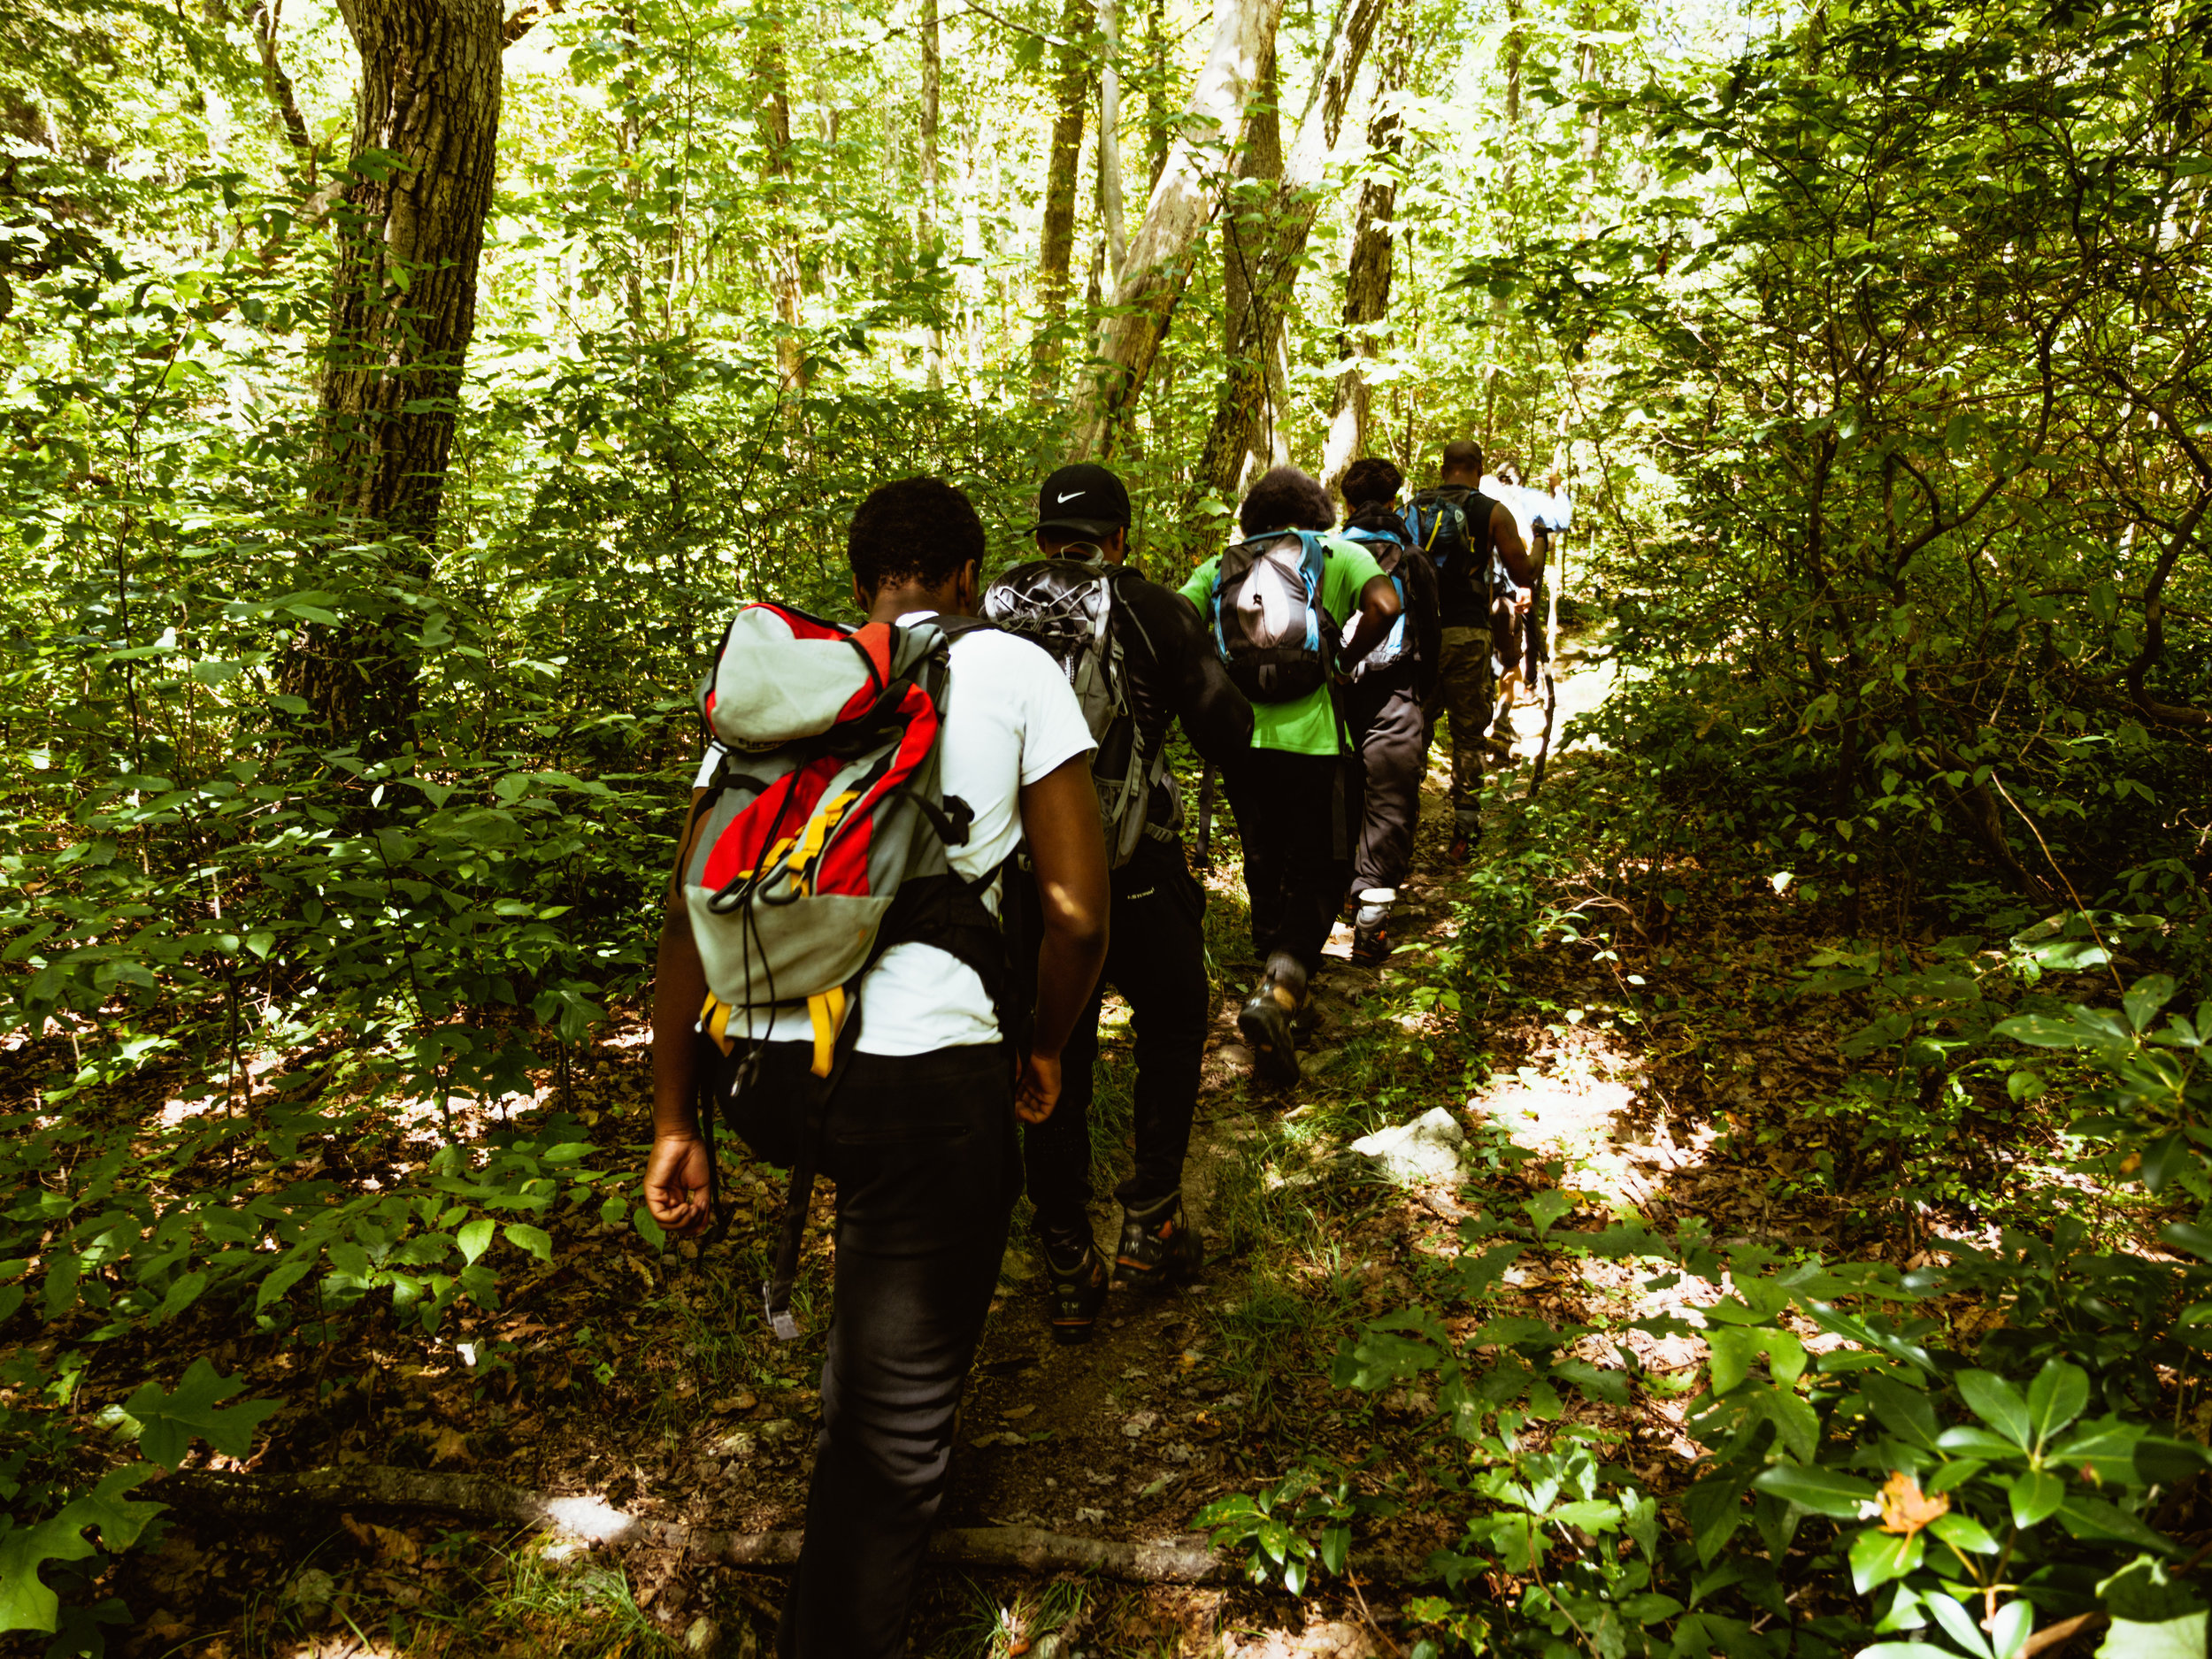 A day hike lead by participants, with roles including Hike Leaders, Navigators and Sweepers.